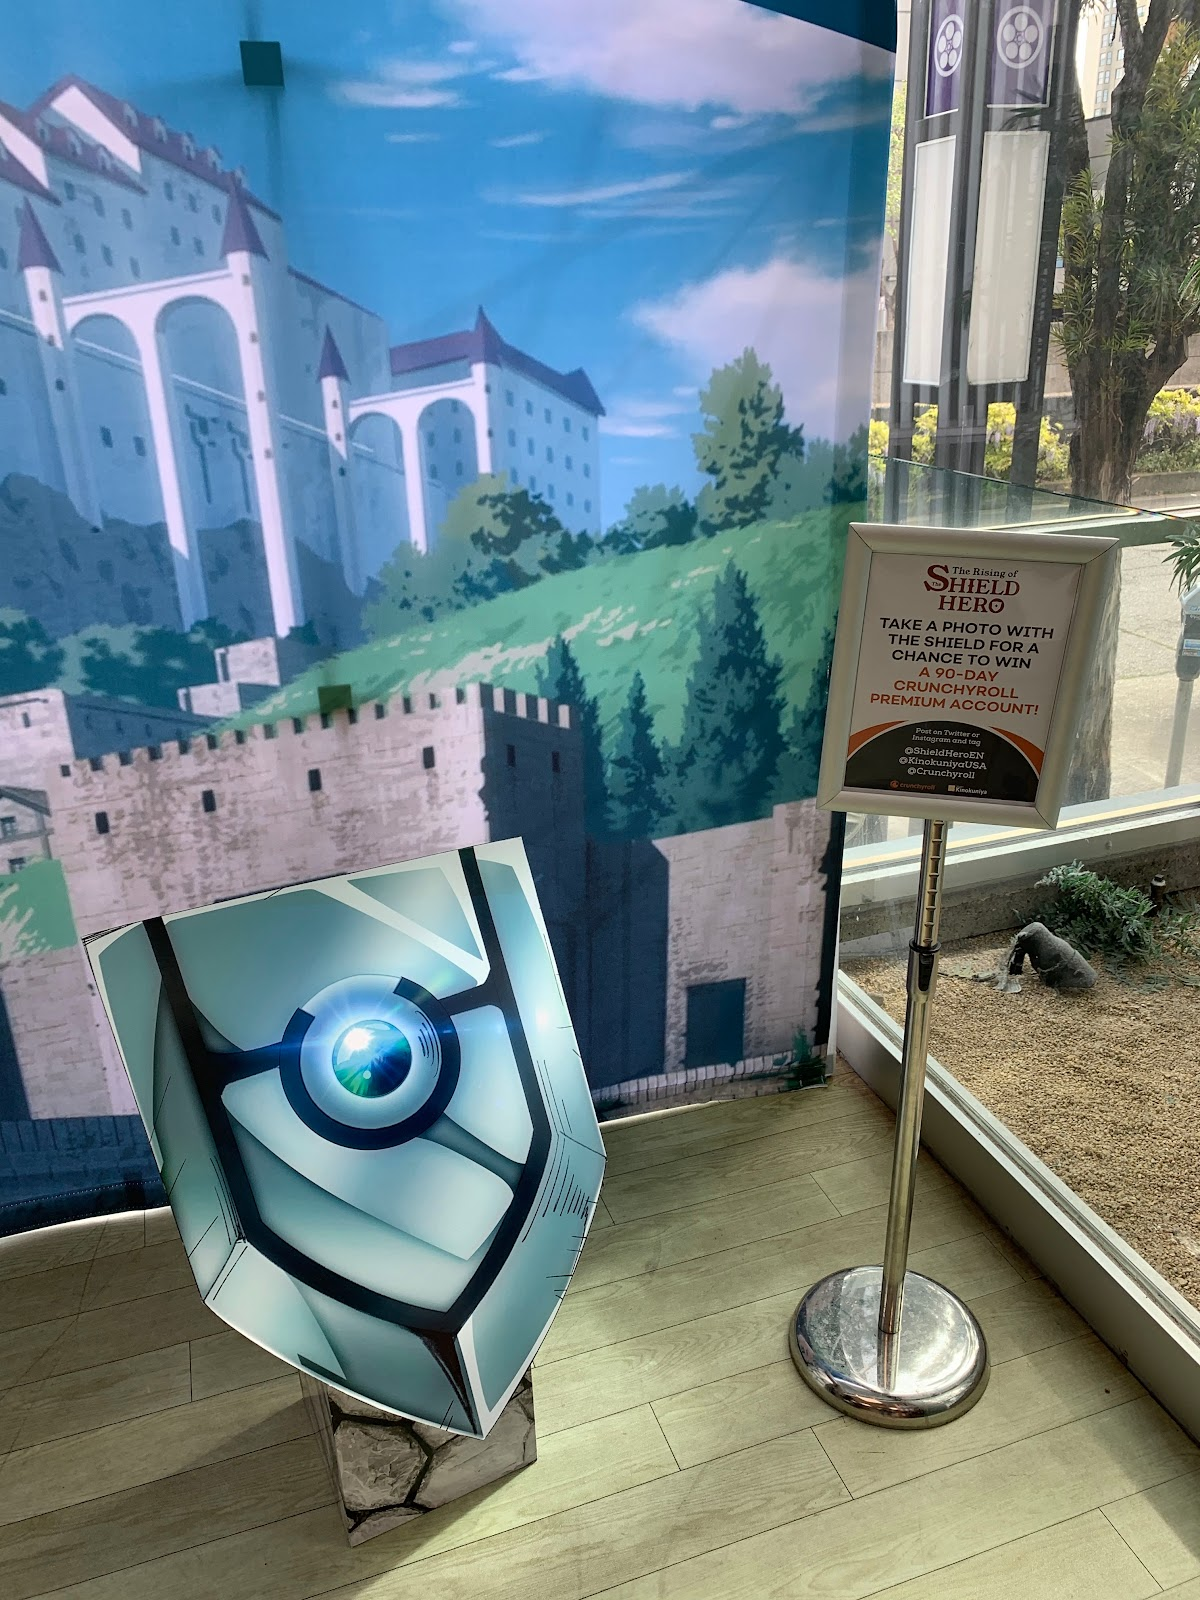 A photo-op spot where anyone could become the Shield Hero!